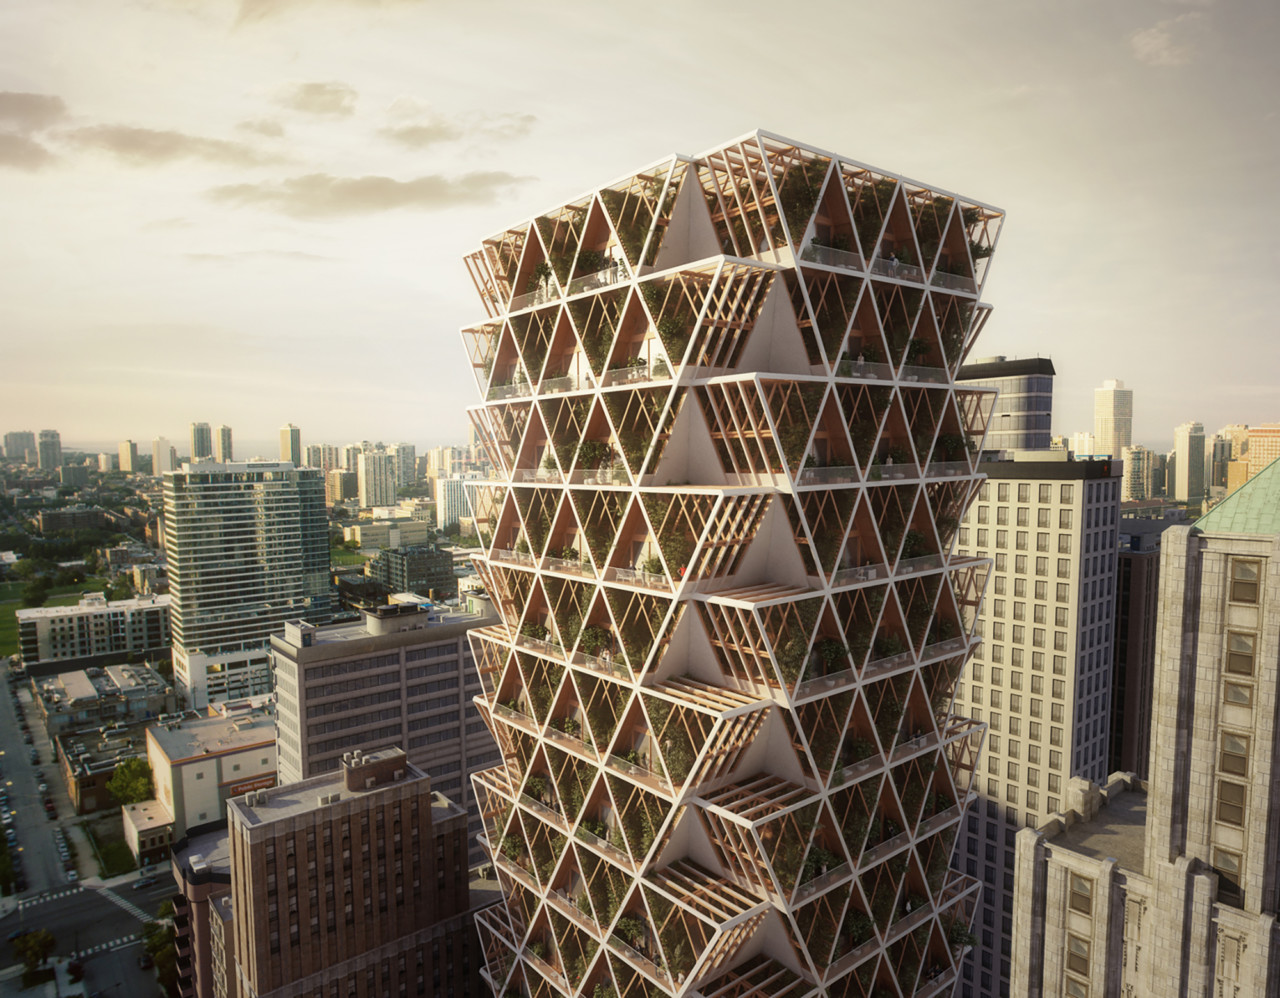 An Ecological High-Rise Designed to Grow with Future Needs